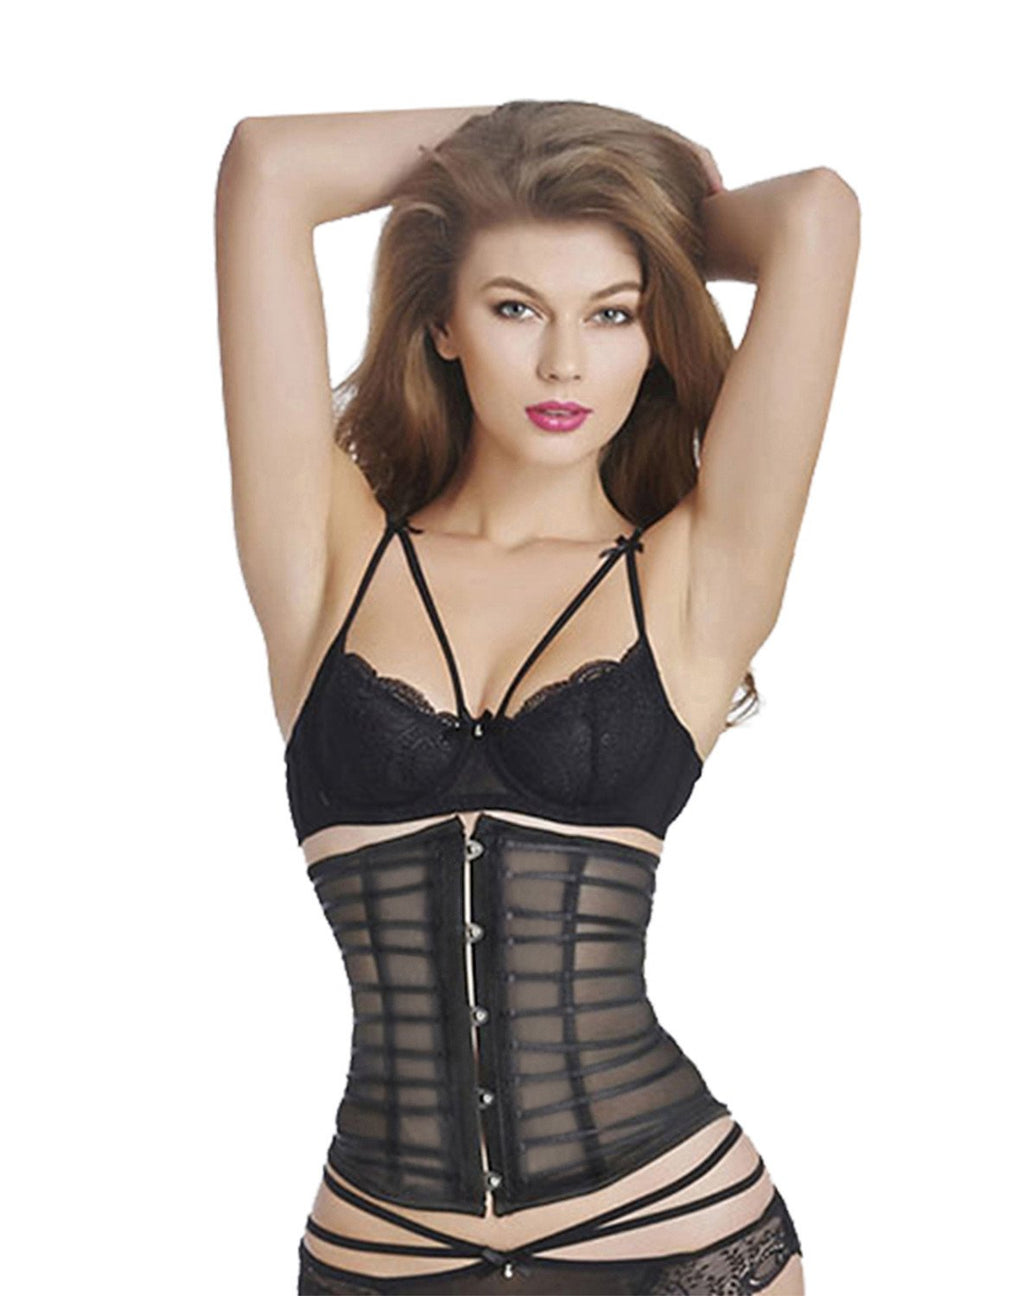 Women's Mesh Striped Transparent Boned Underbust Black Corset Bustier